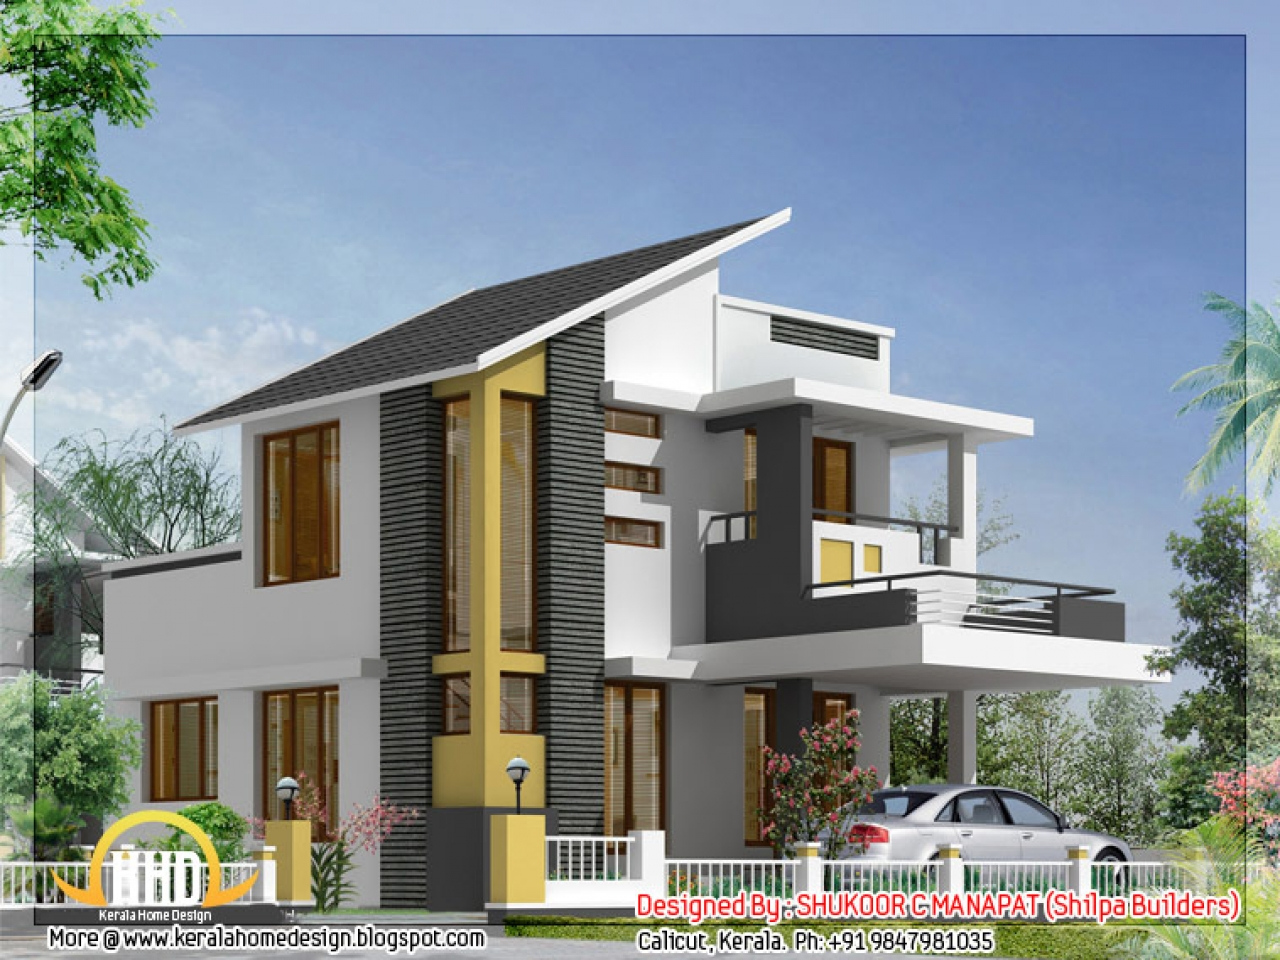 Low Cost House Designs India Low Cost House Kits, planning ...